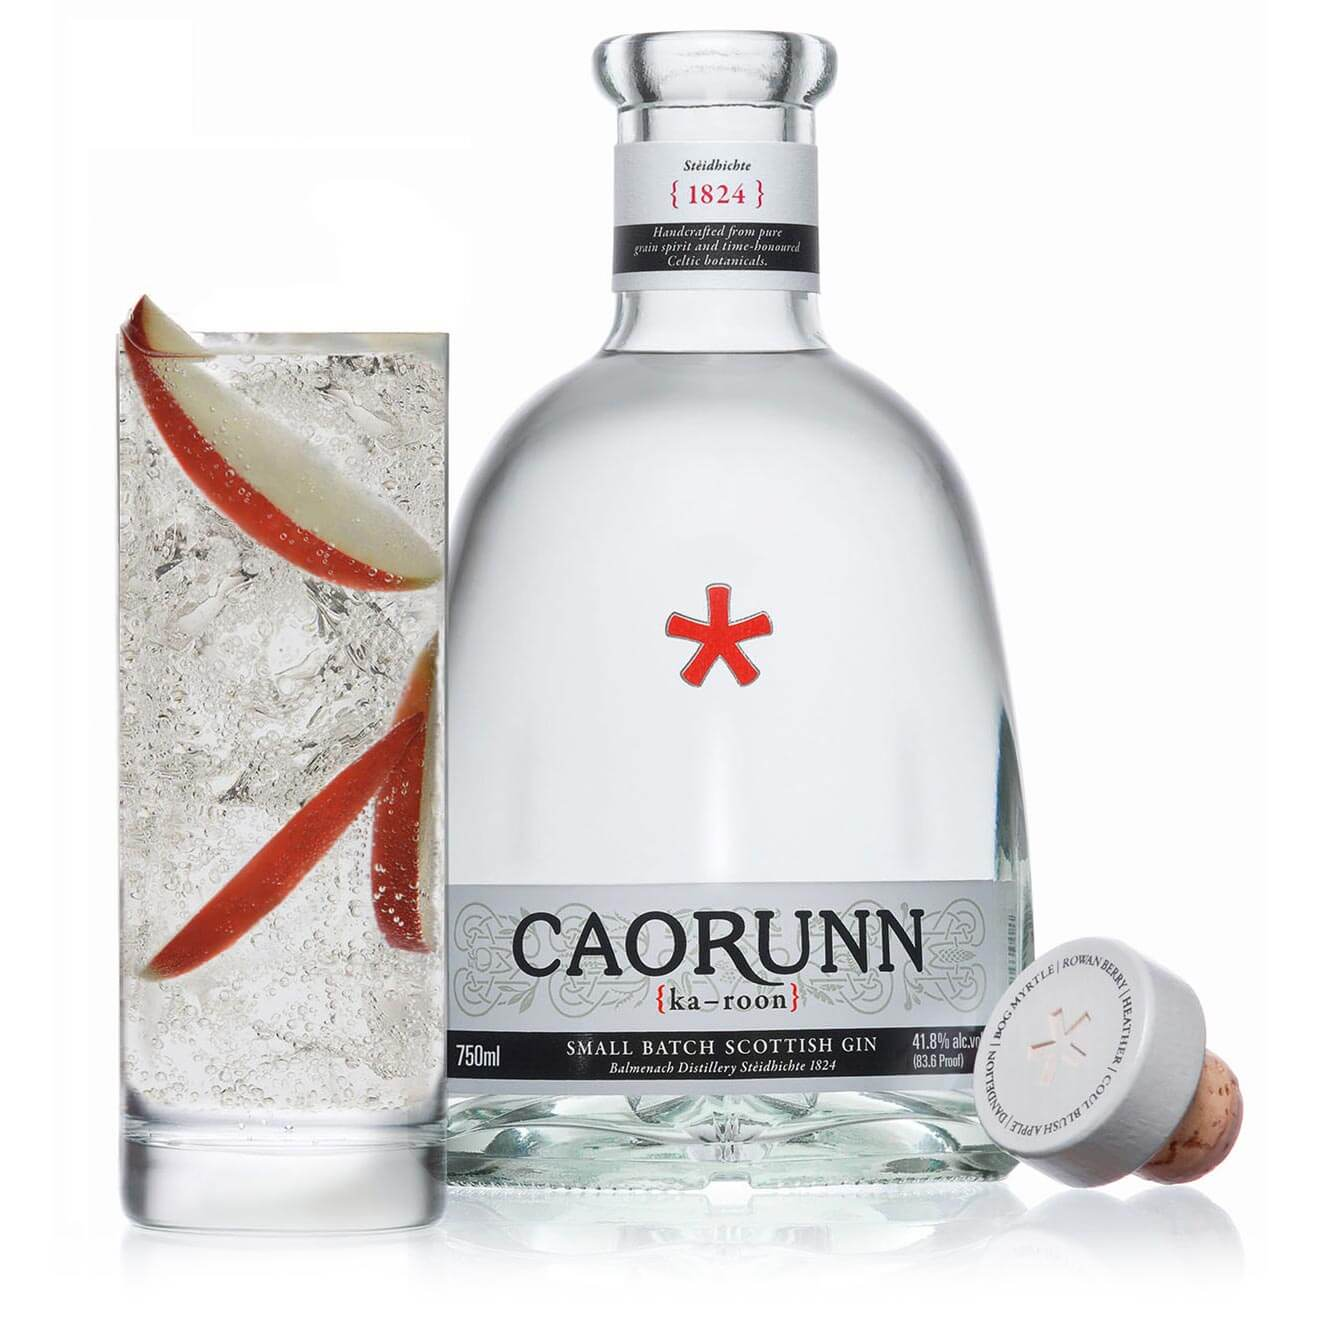 Caorunn + Tonic Perfect Serve, bottle and glass on white